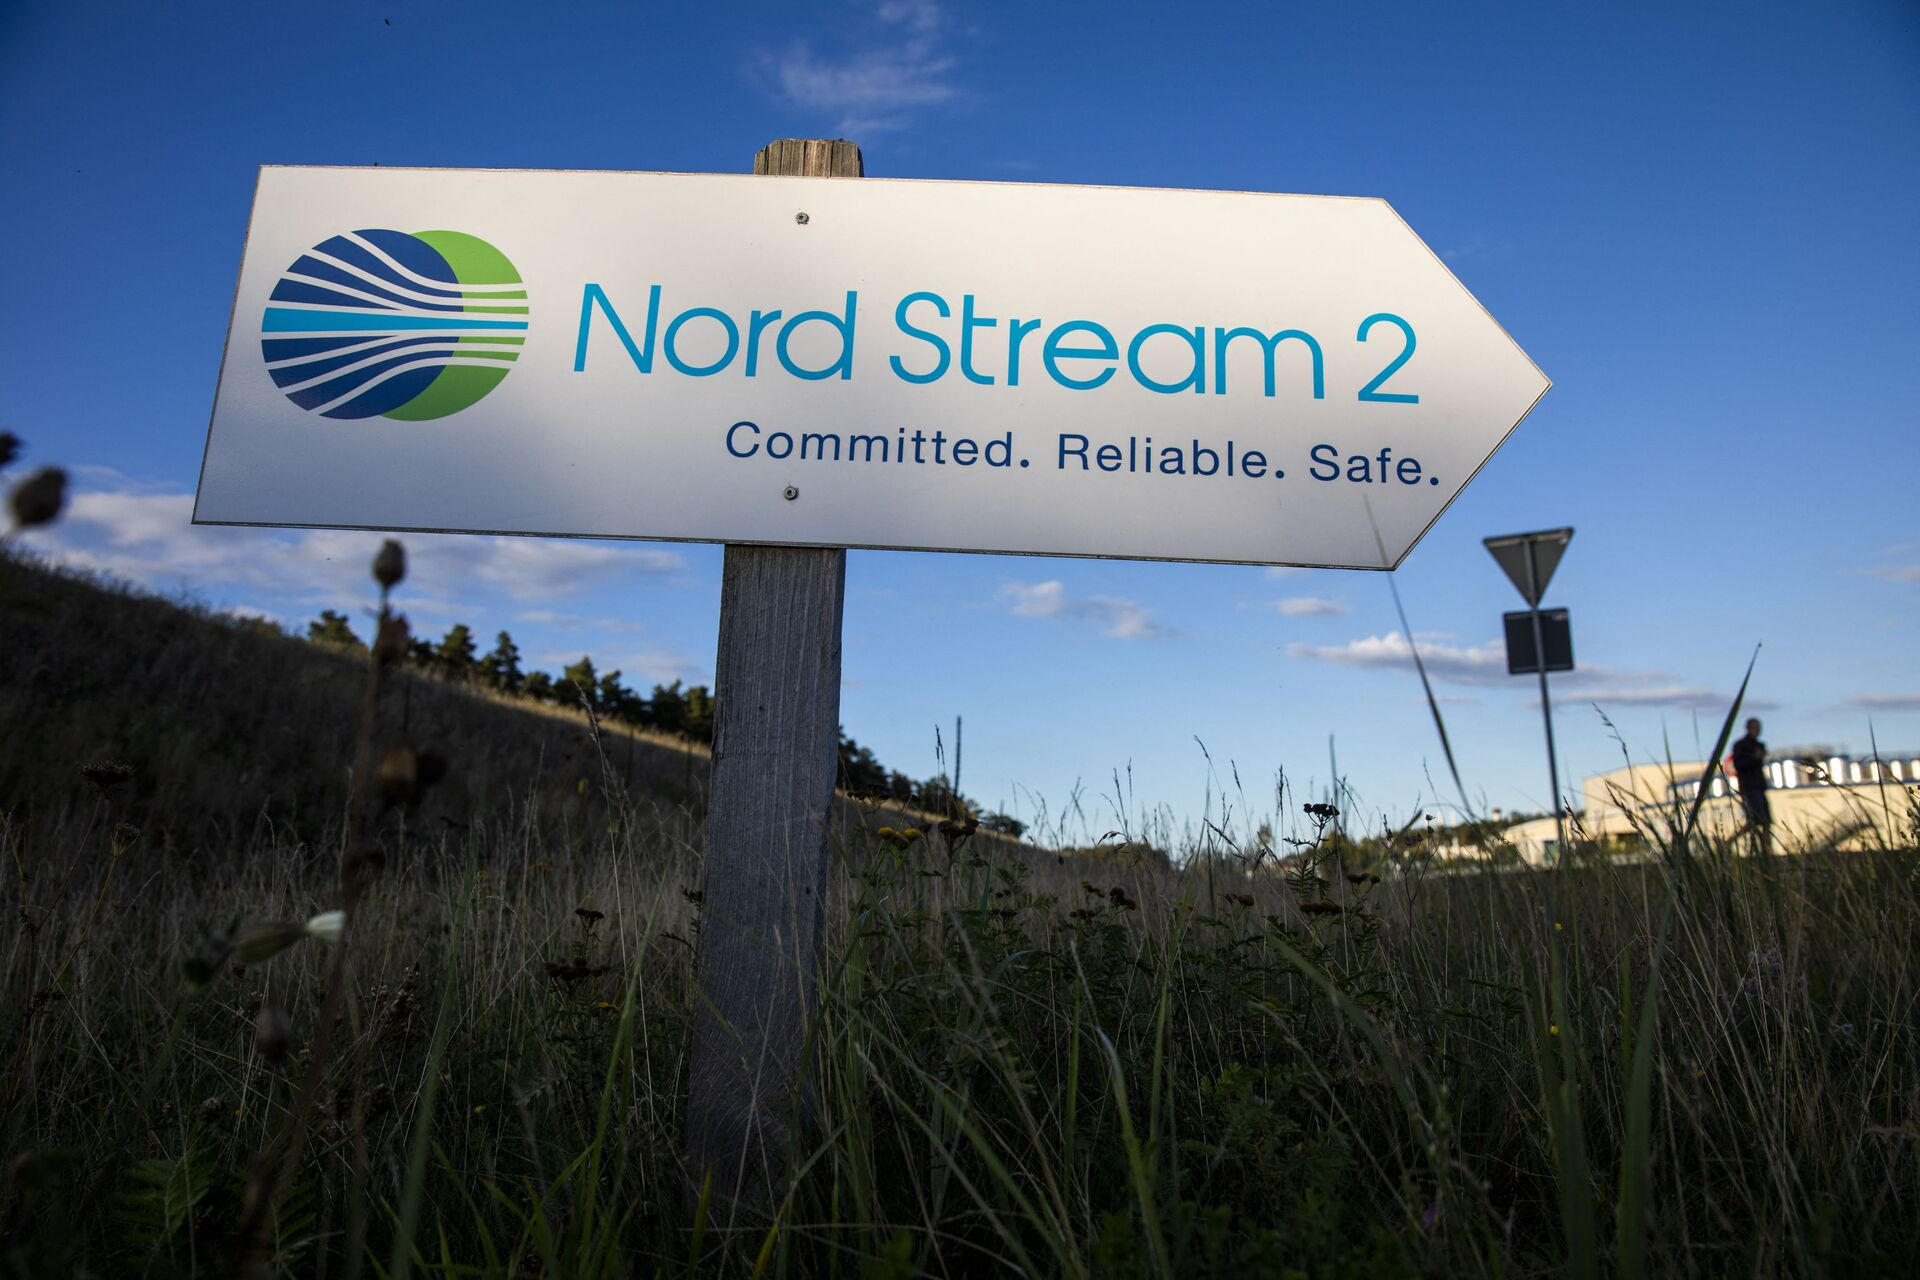 A road sign directs traffic towards the Nord Stream 2 gas line landfall facility entrance in Lubmin, north eastern Germany, on September 7, 2020. - Sputnik International, 1920, 23.09.2021